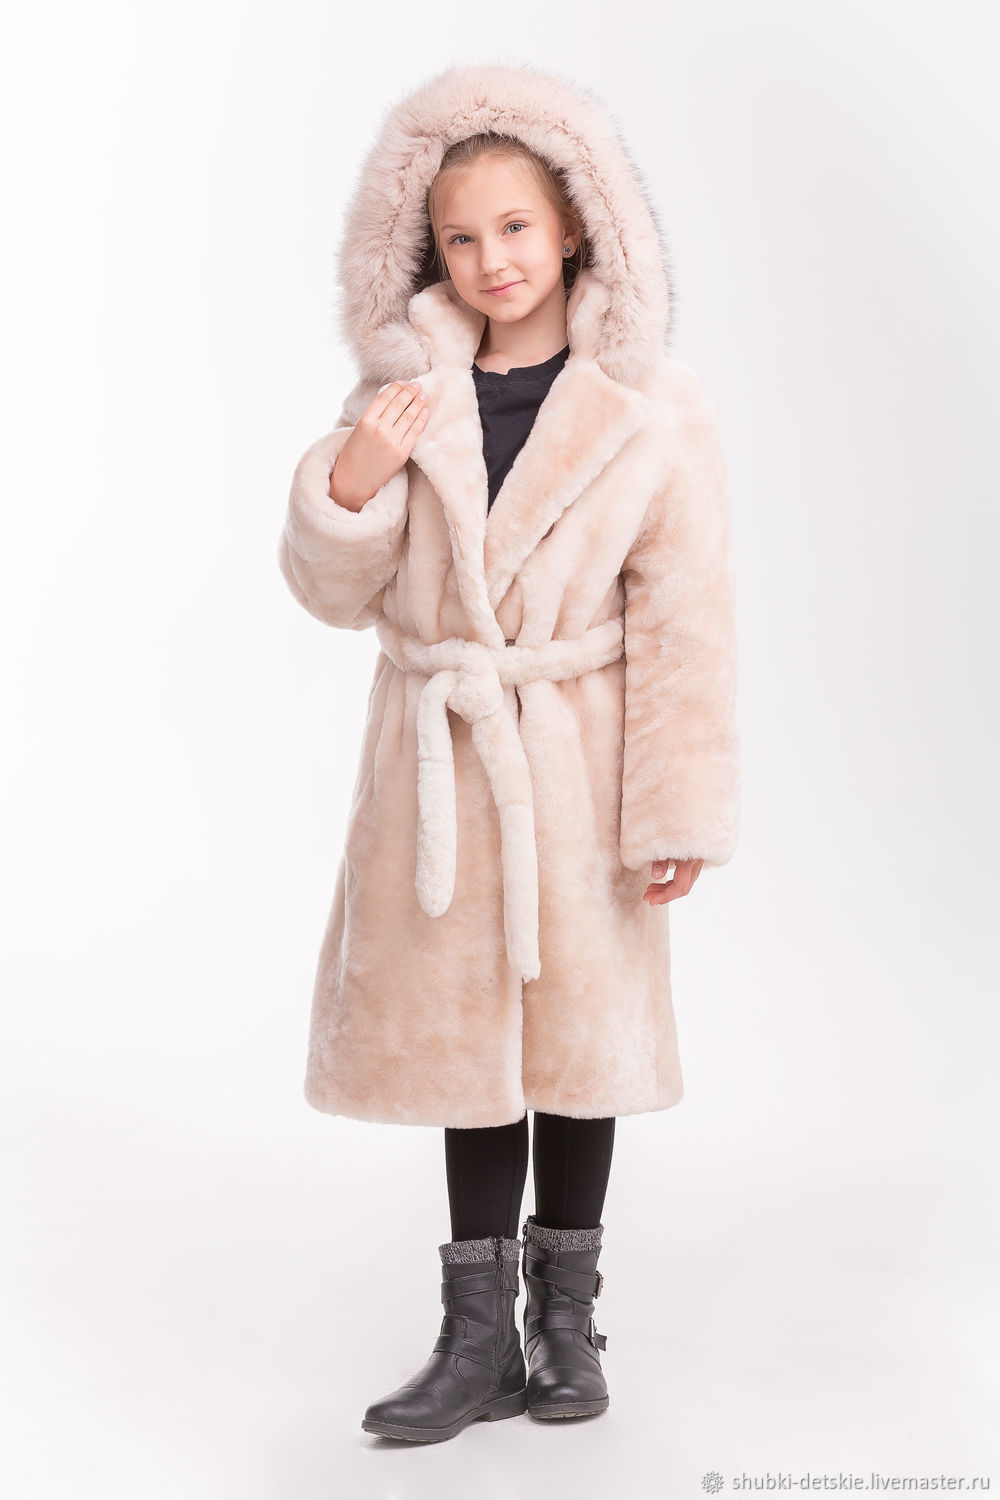 eca2040eb501 Online shopping on Outer Clothing handmade. Order Mouton coat with belt. Kids  fur coat. Livemaster.